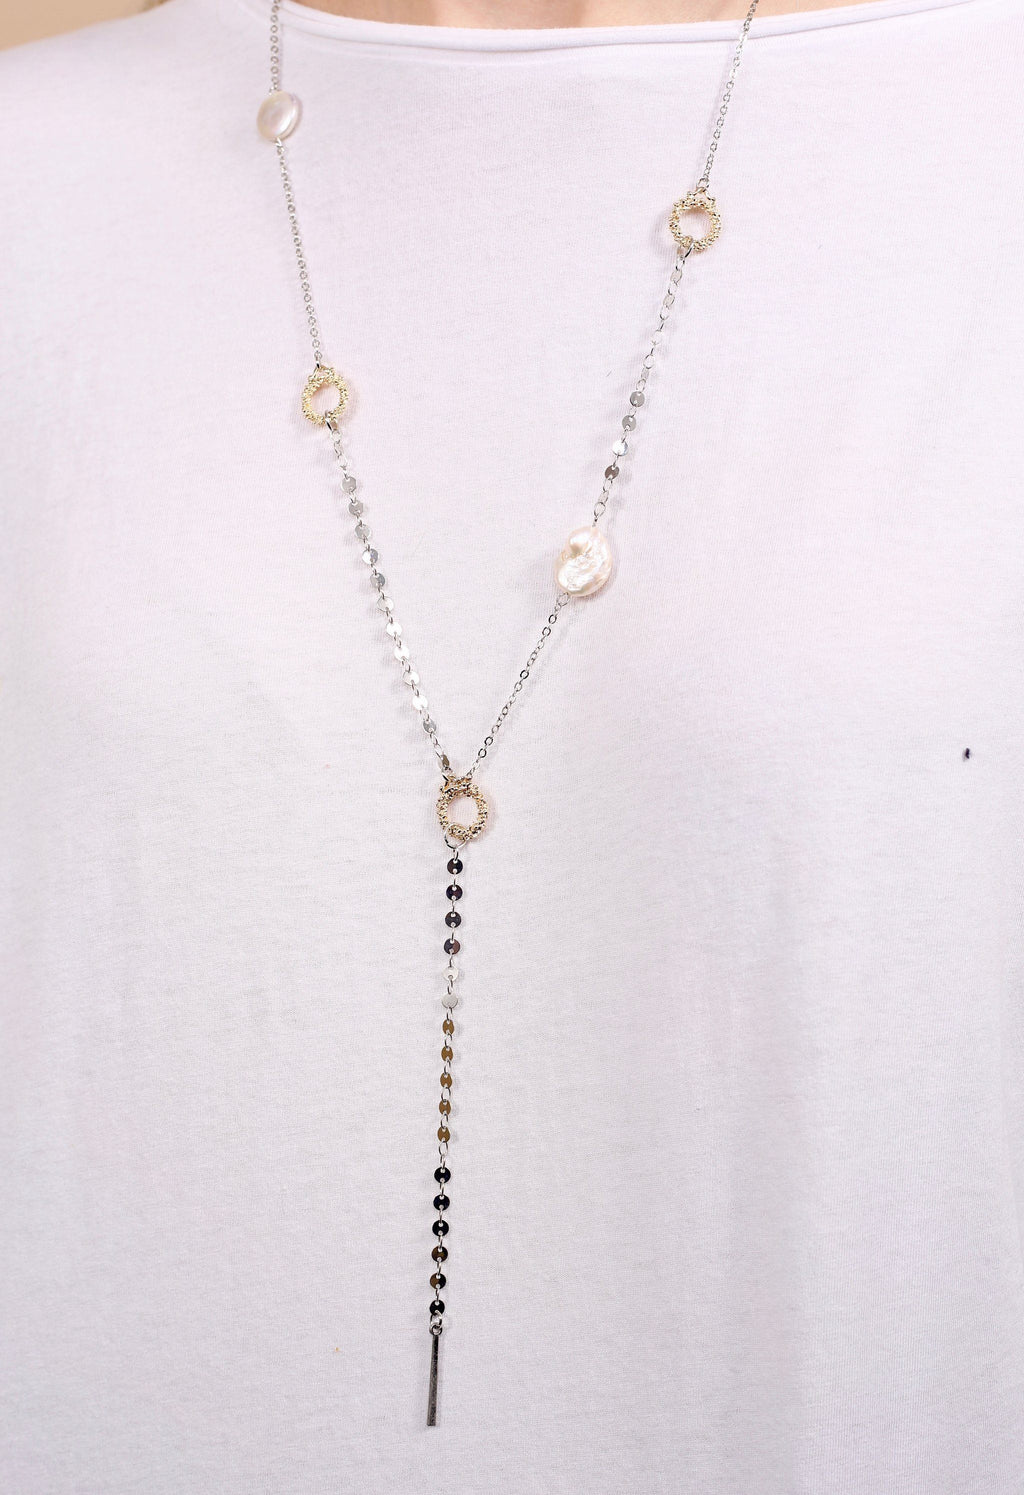 Addison Pearl and Gold Wreath Y Silver Necklace - Caroline Hill